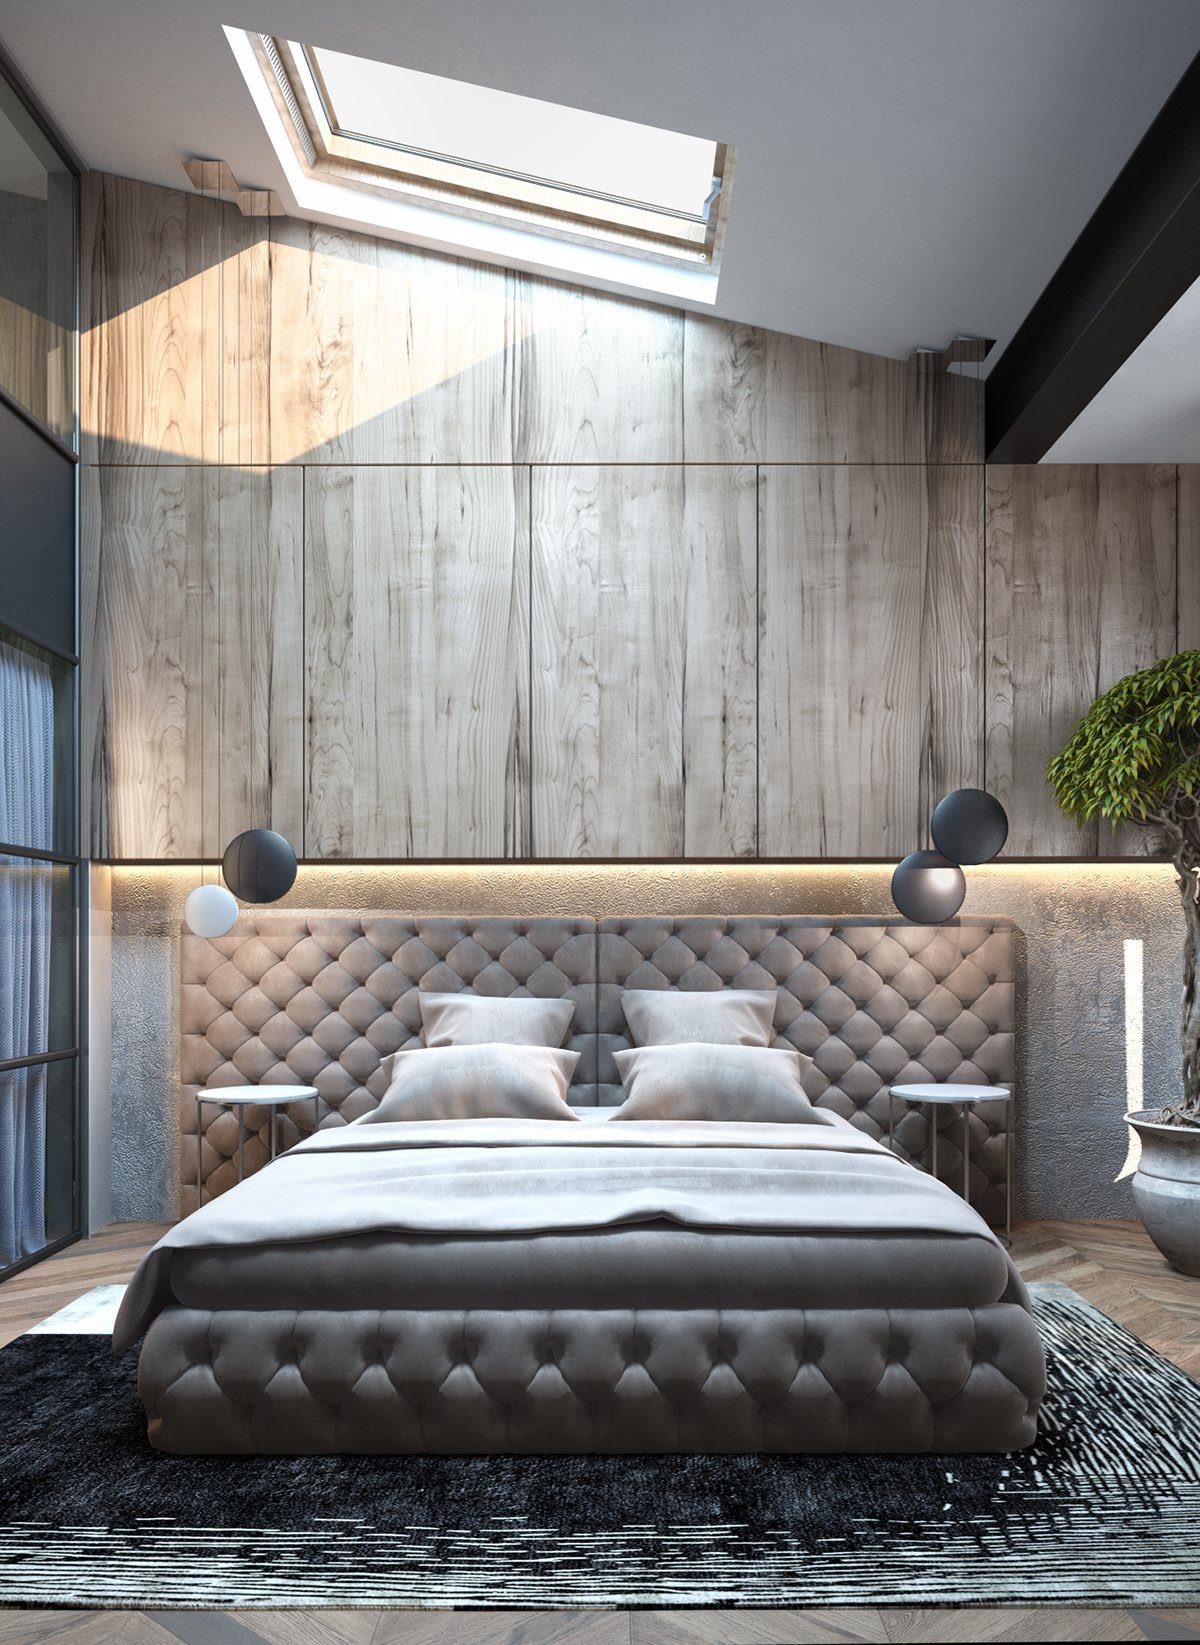 Luxurious Tufted Bed Inspiration - Homes with inspiring wall treatments and designer lighting